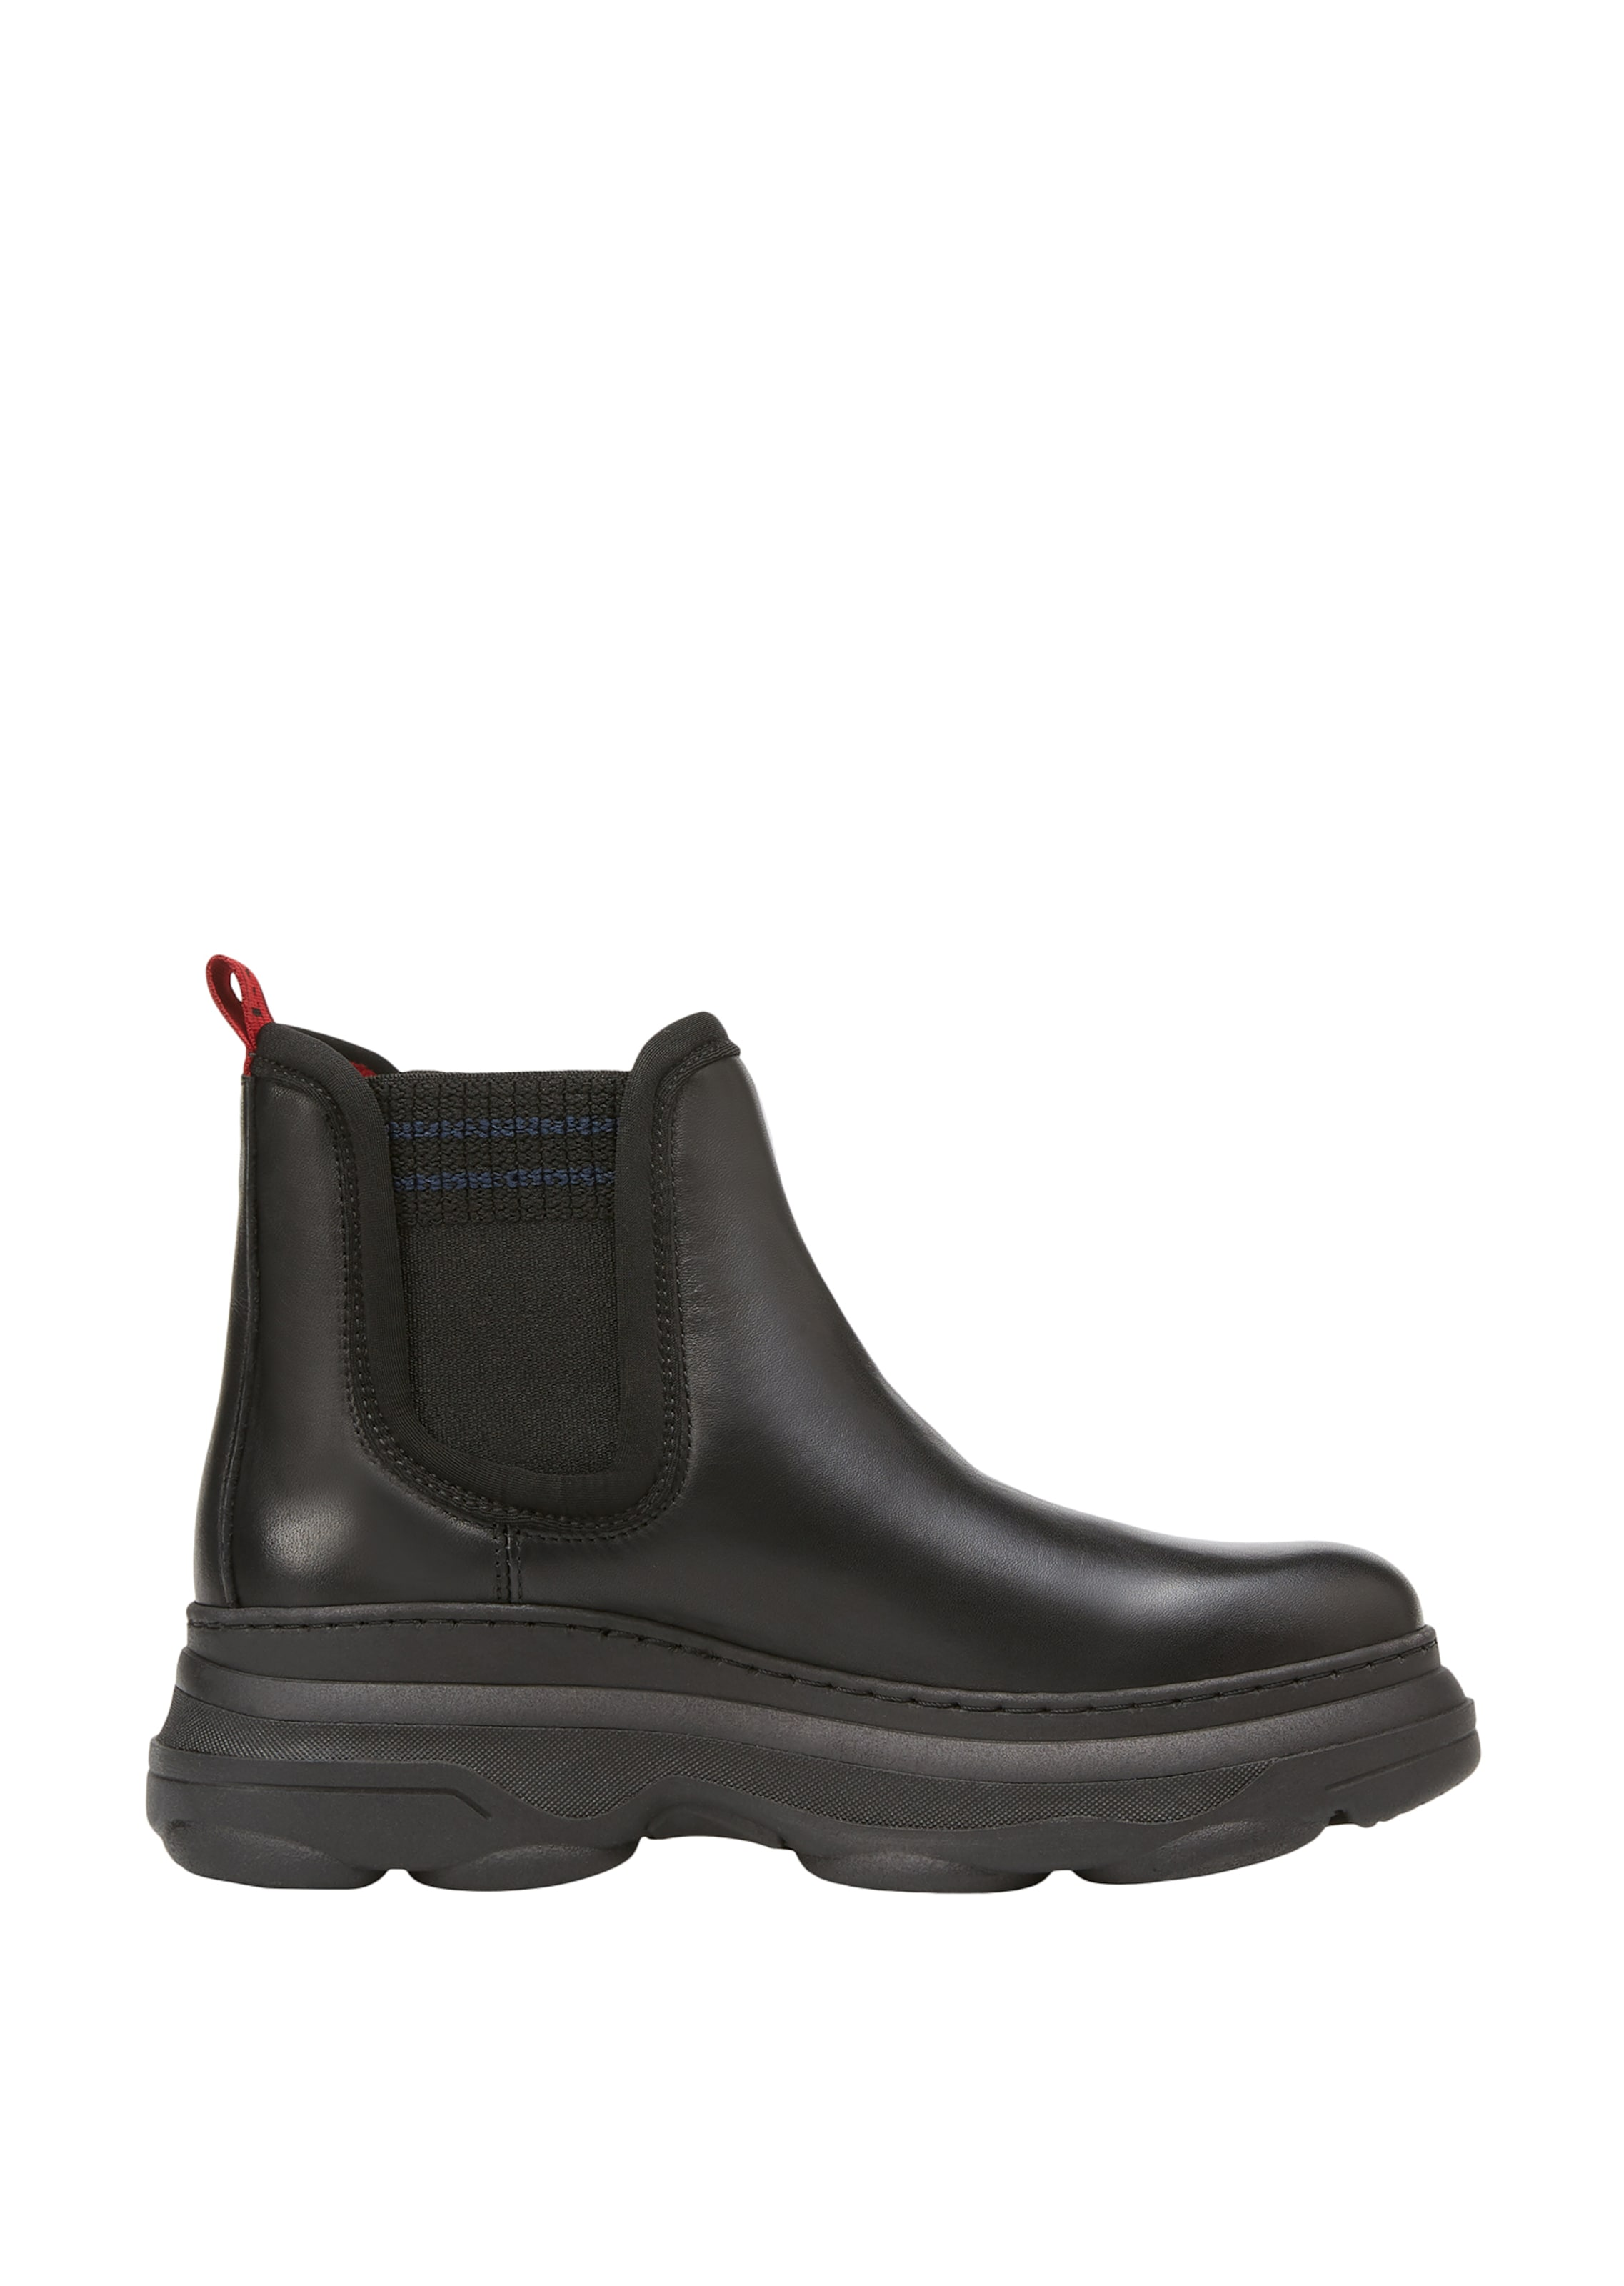 In Chelsea Boots Marc Schwarz O'polo zSVUMp